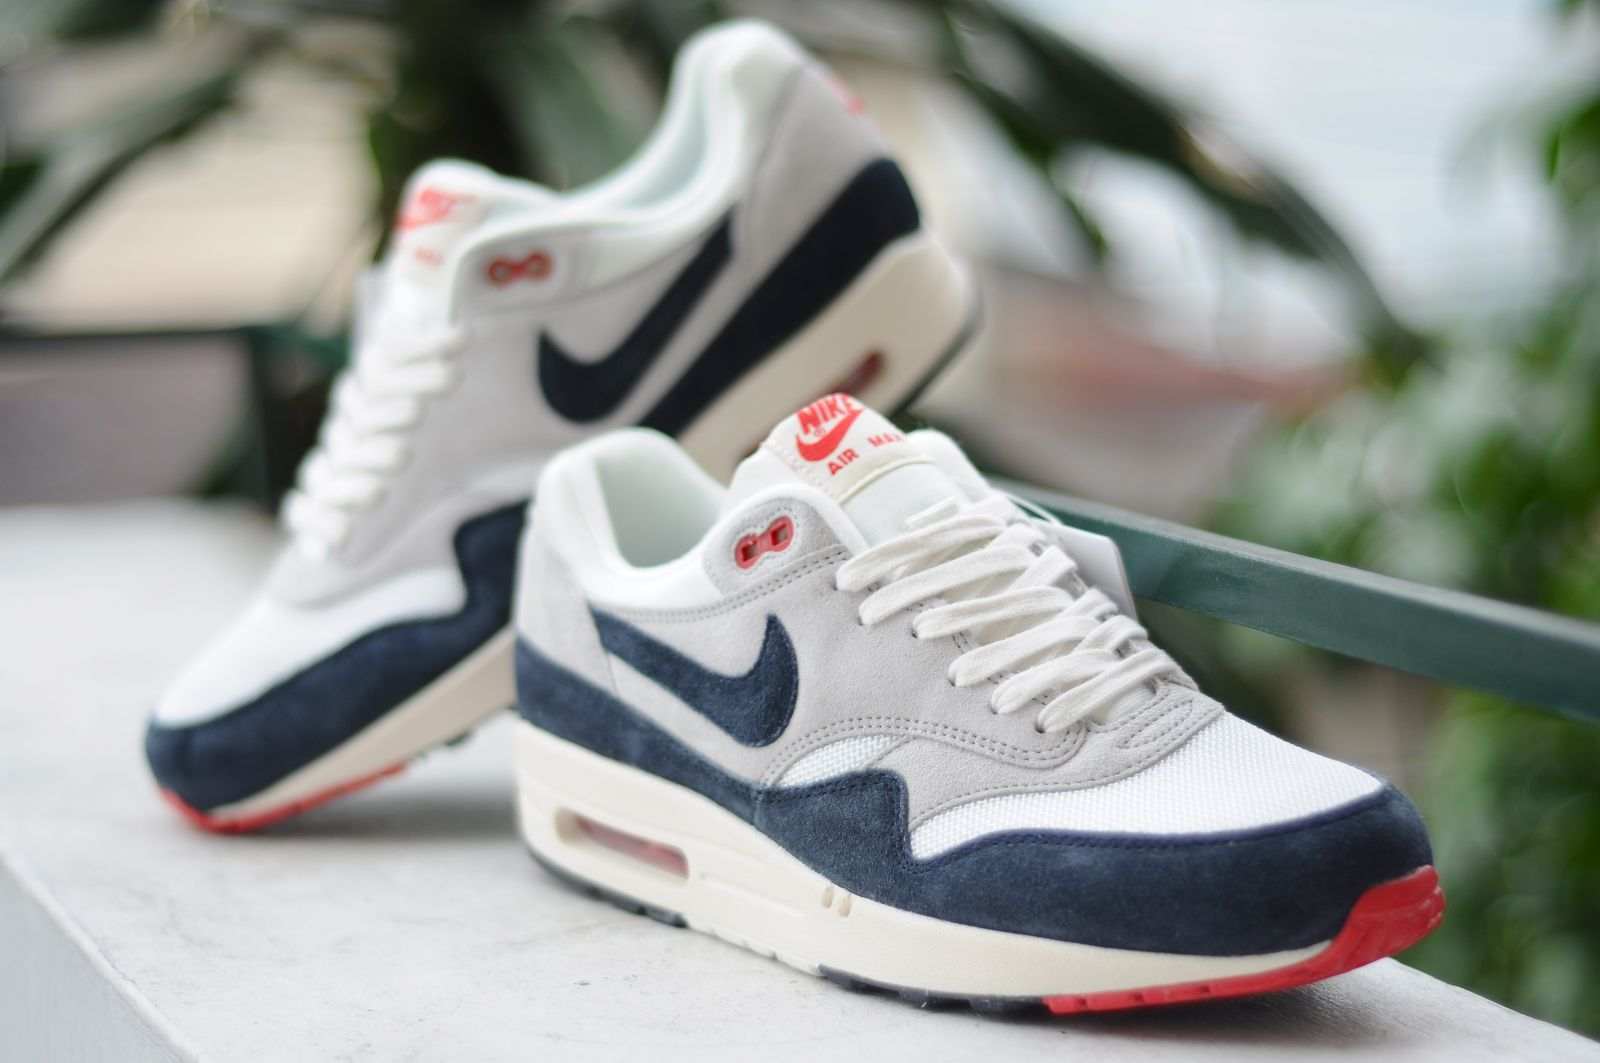 5e4da09aca7 10 Best Colorways of the Nike Air Max 1